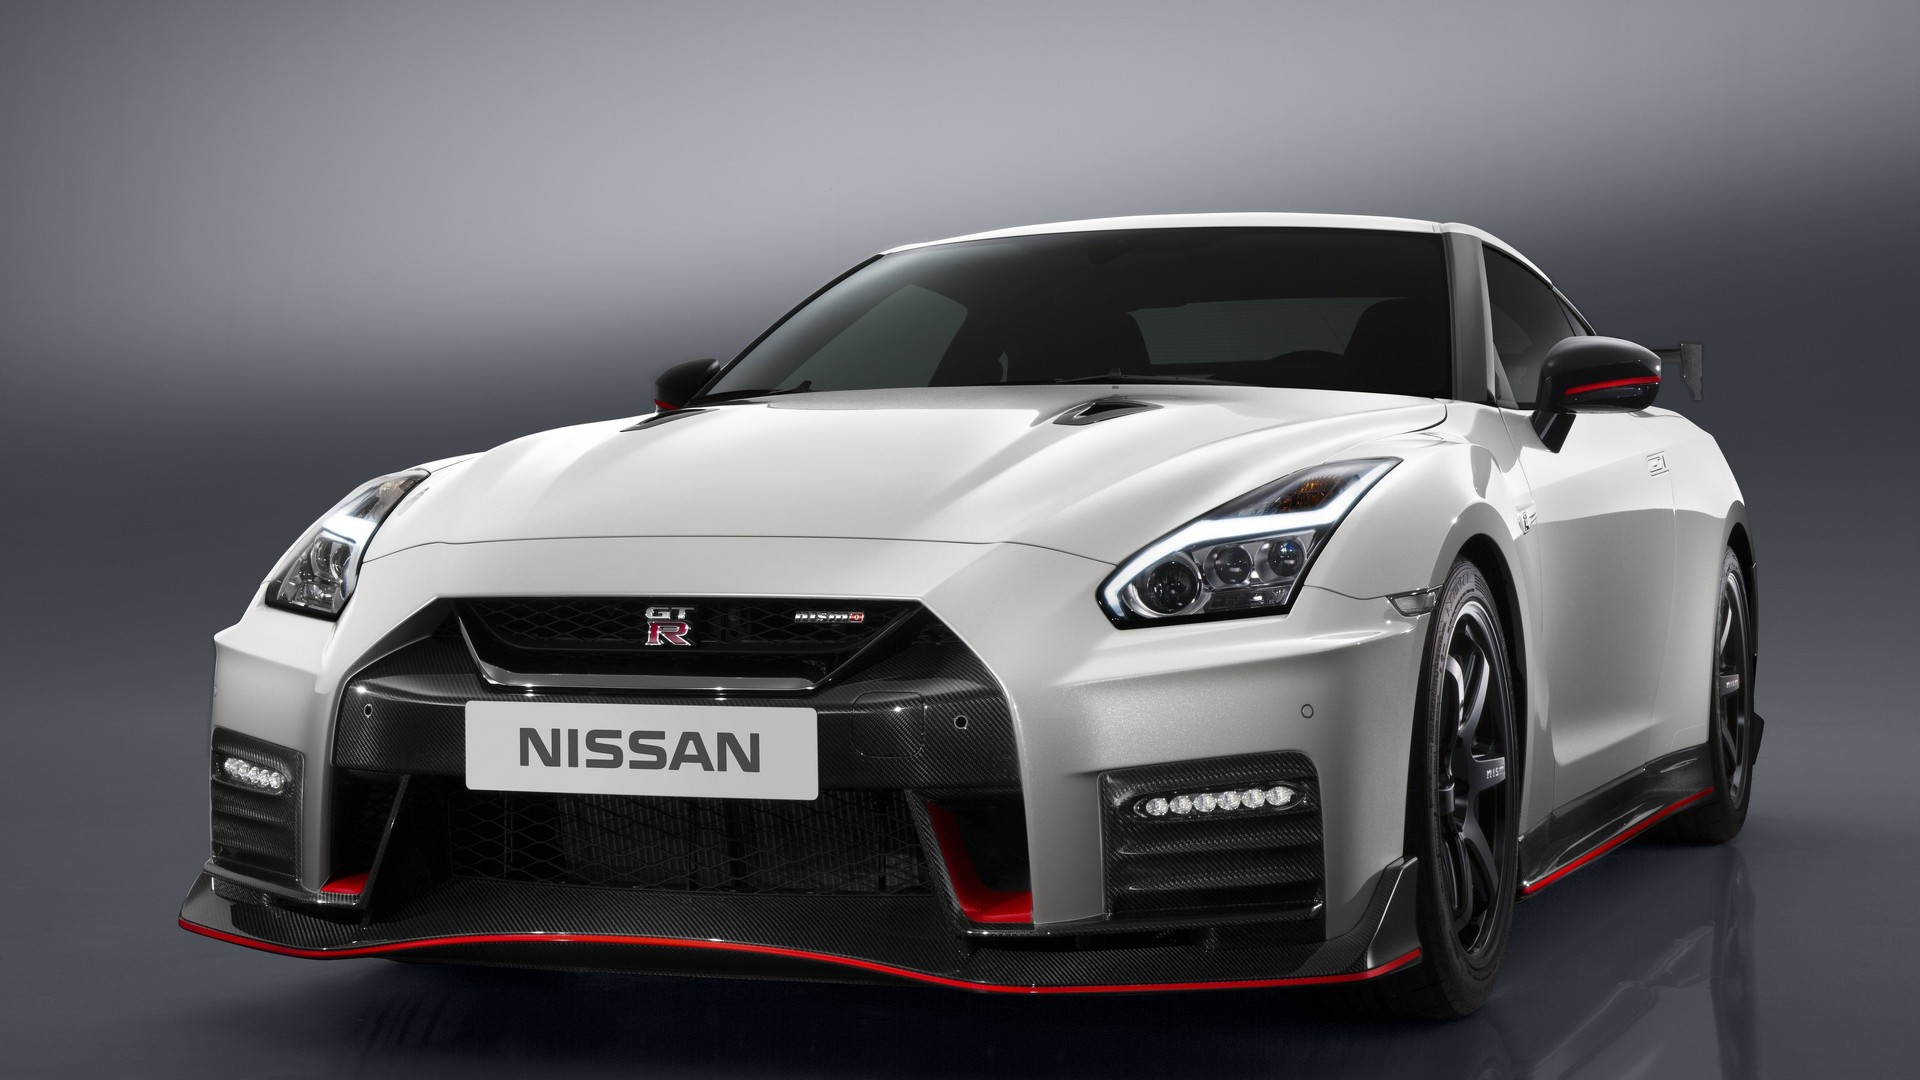 2017 Nissan Gt R Msrp >> Nissan Gt R Nismo Pricing Announced For France Germany And Uk